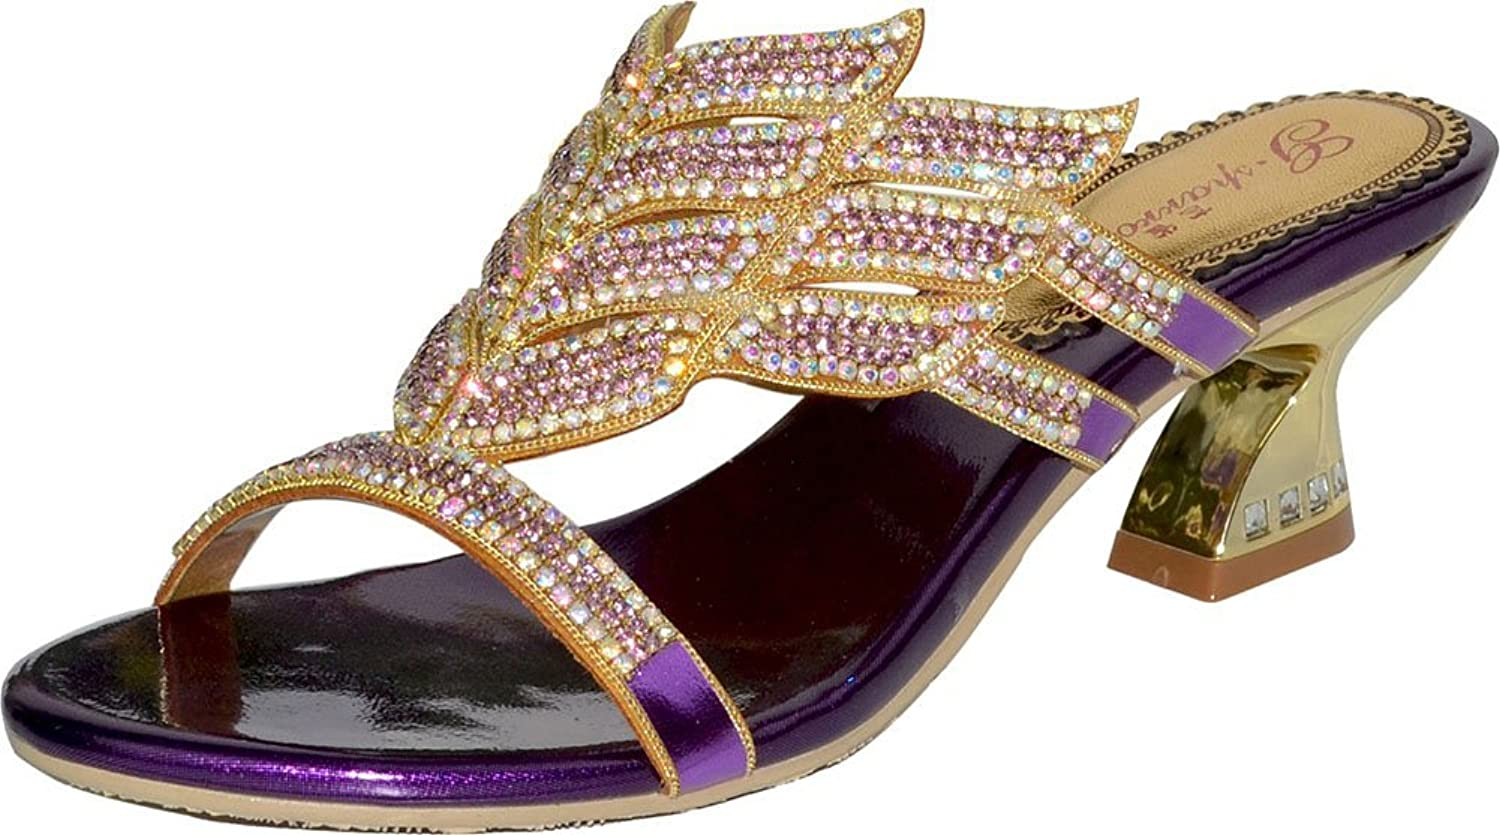 C&C Women's Outdoor Genuine Leather Crystal Sandal